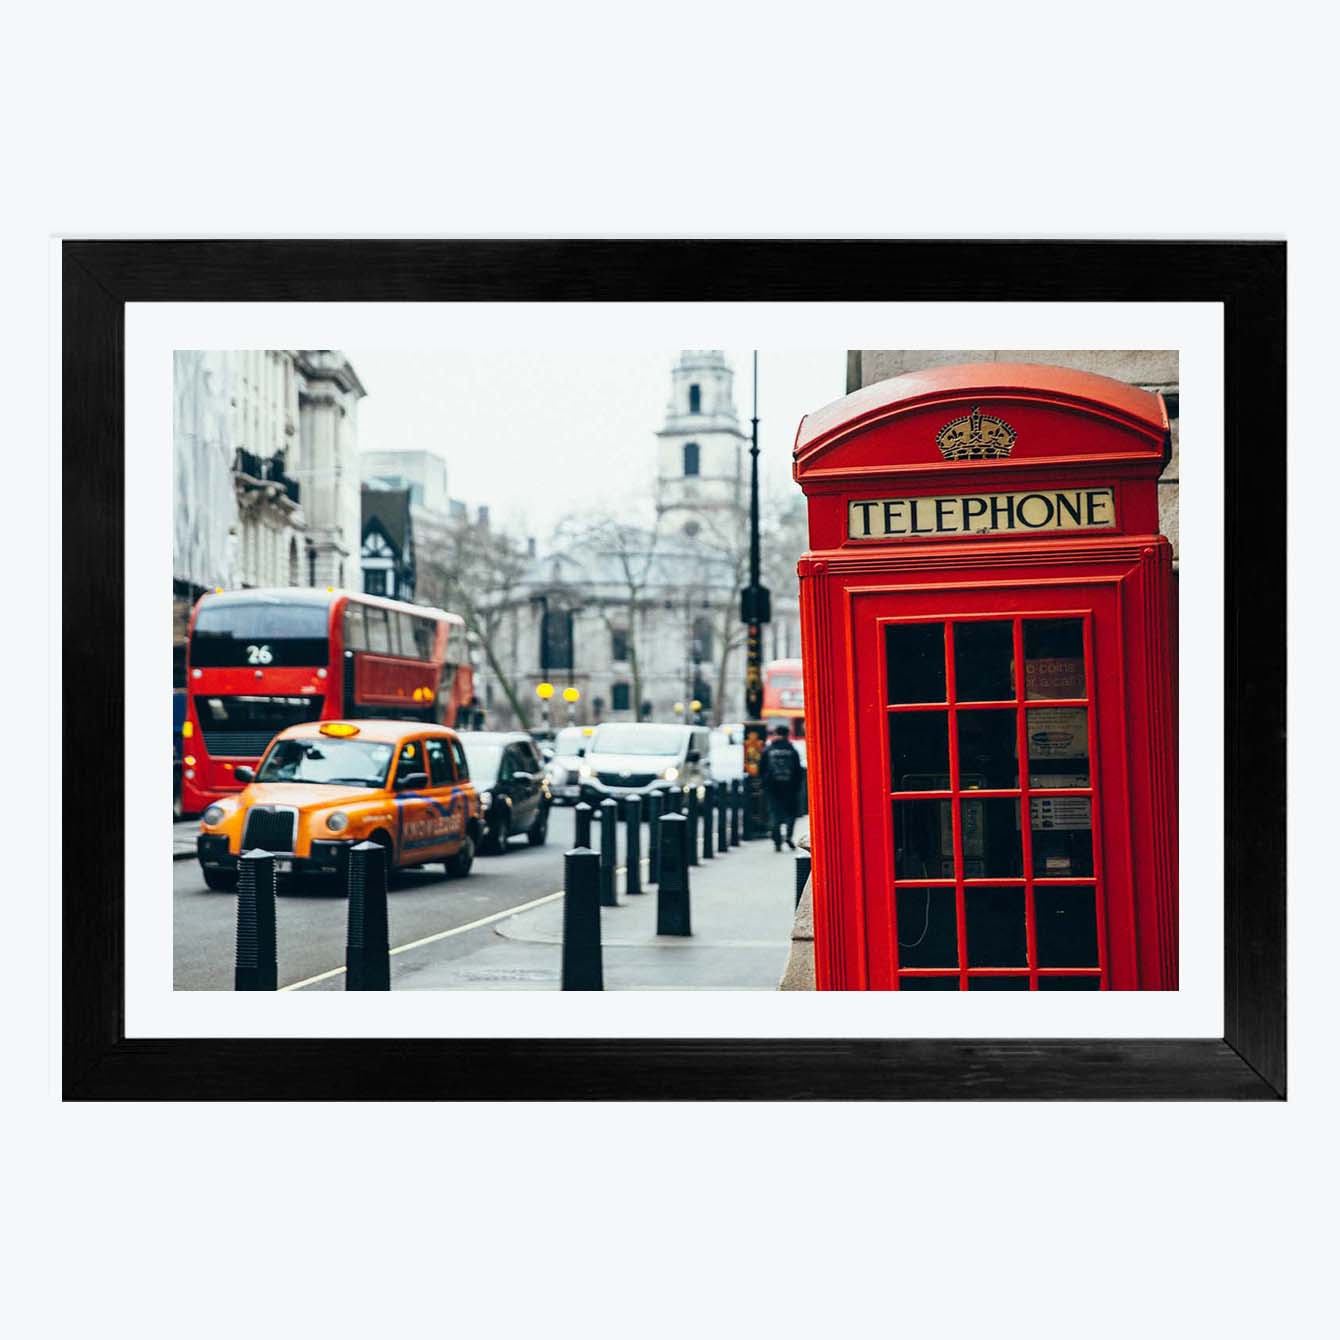 Telephone City Cities Framed Photography